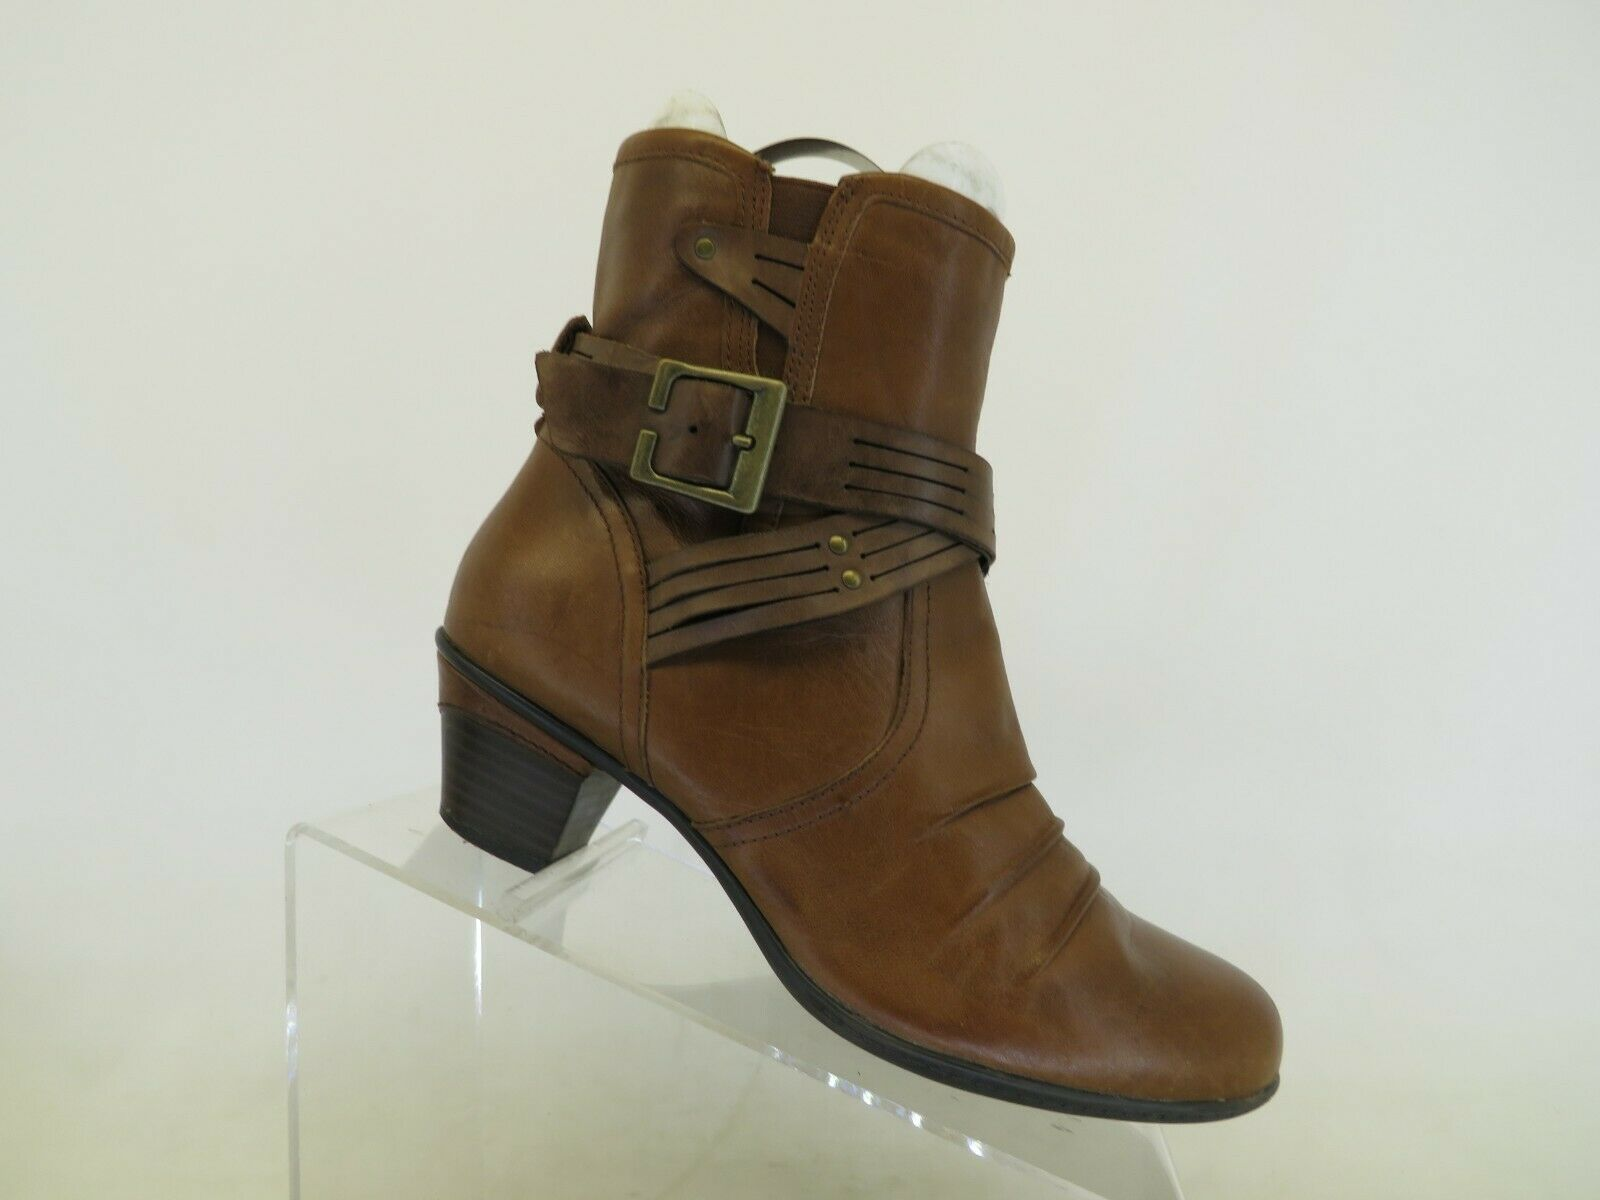 Earth Brown Leather Zip Buckle Ankle Fashion Boots Bootie Size 8.5 B